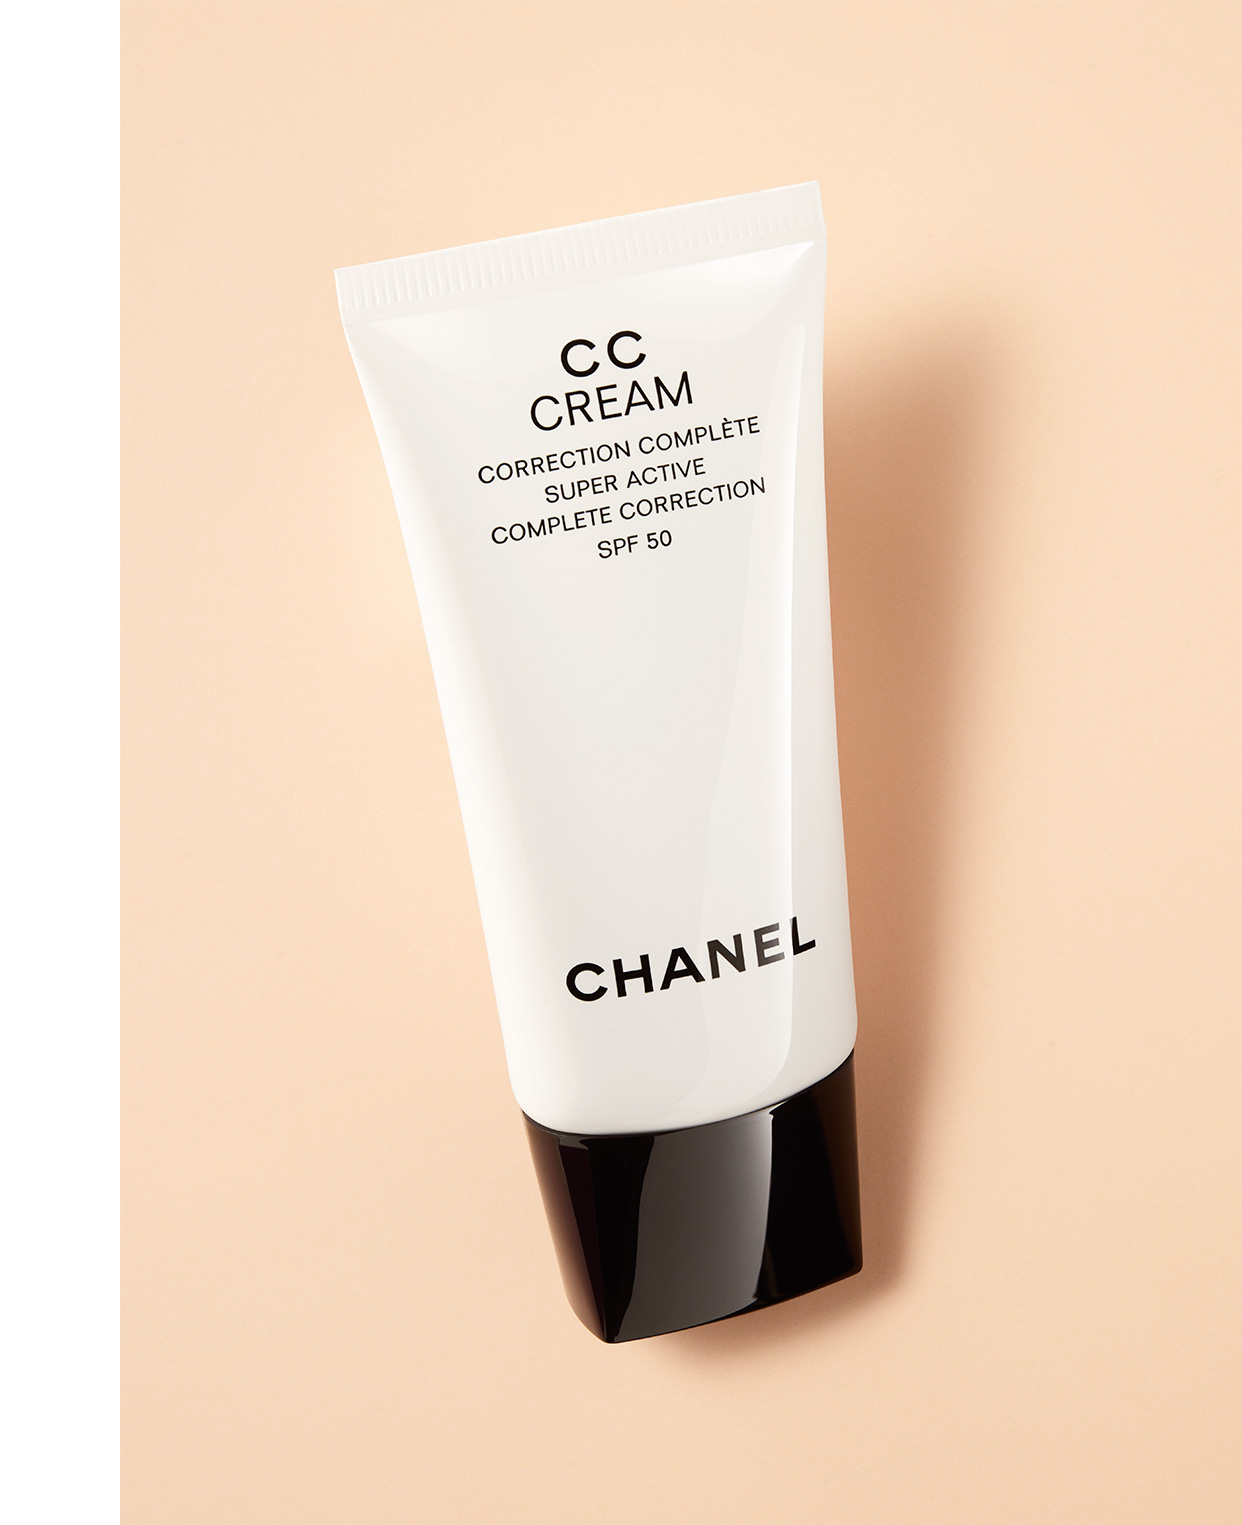 CC CREAM CHANNEL